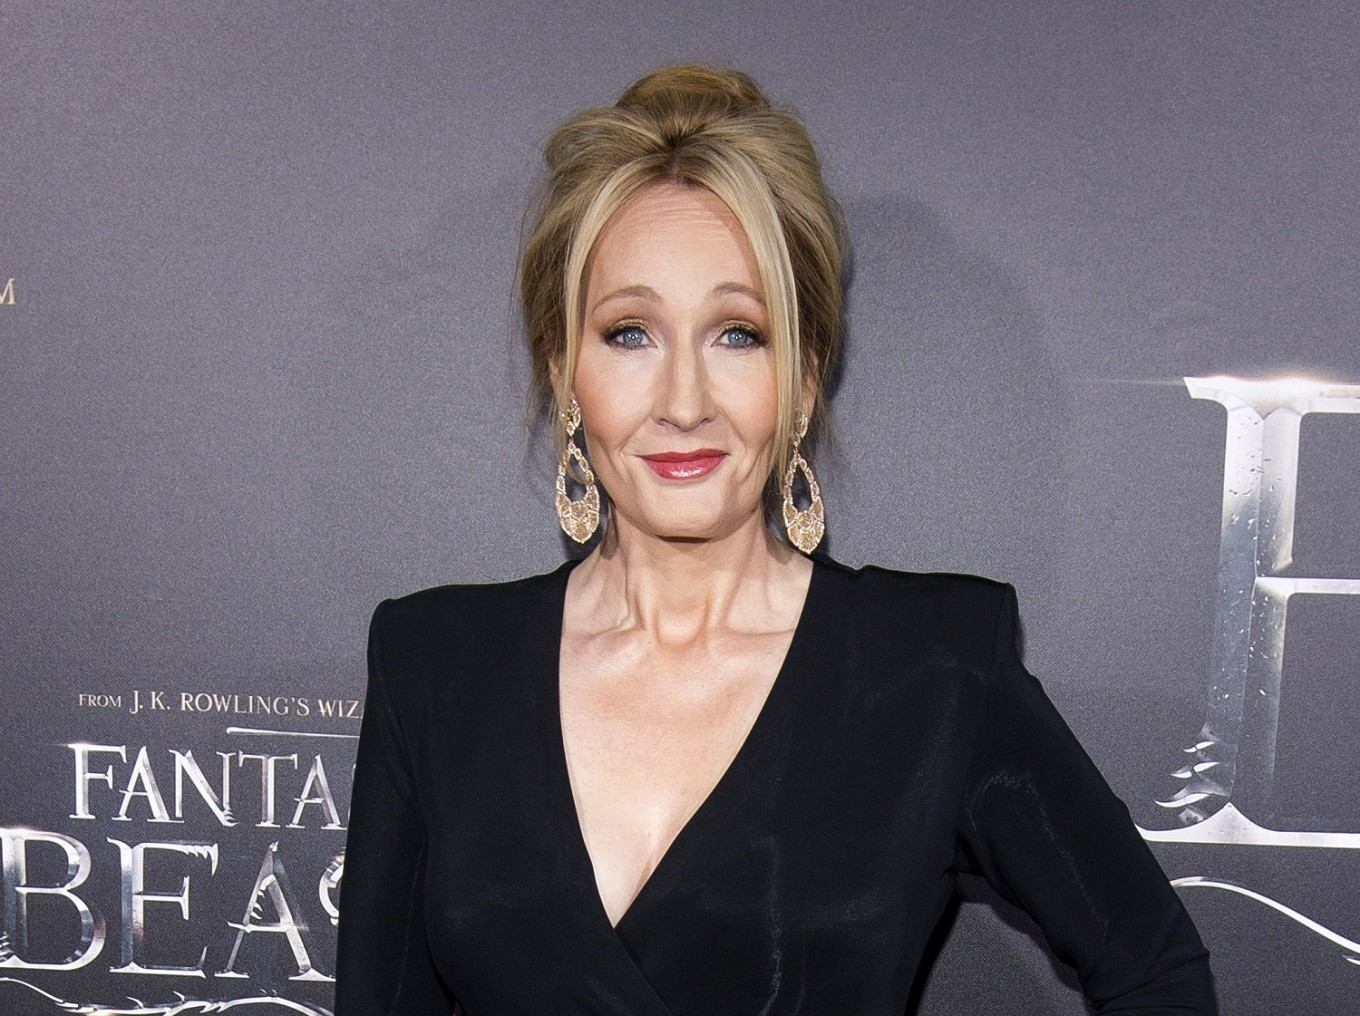 J.K. Rowling has the best replies to Trump supporters and trolls